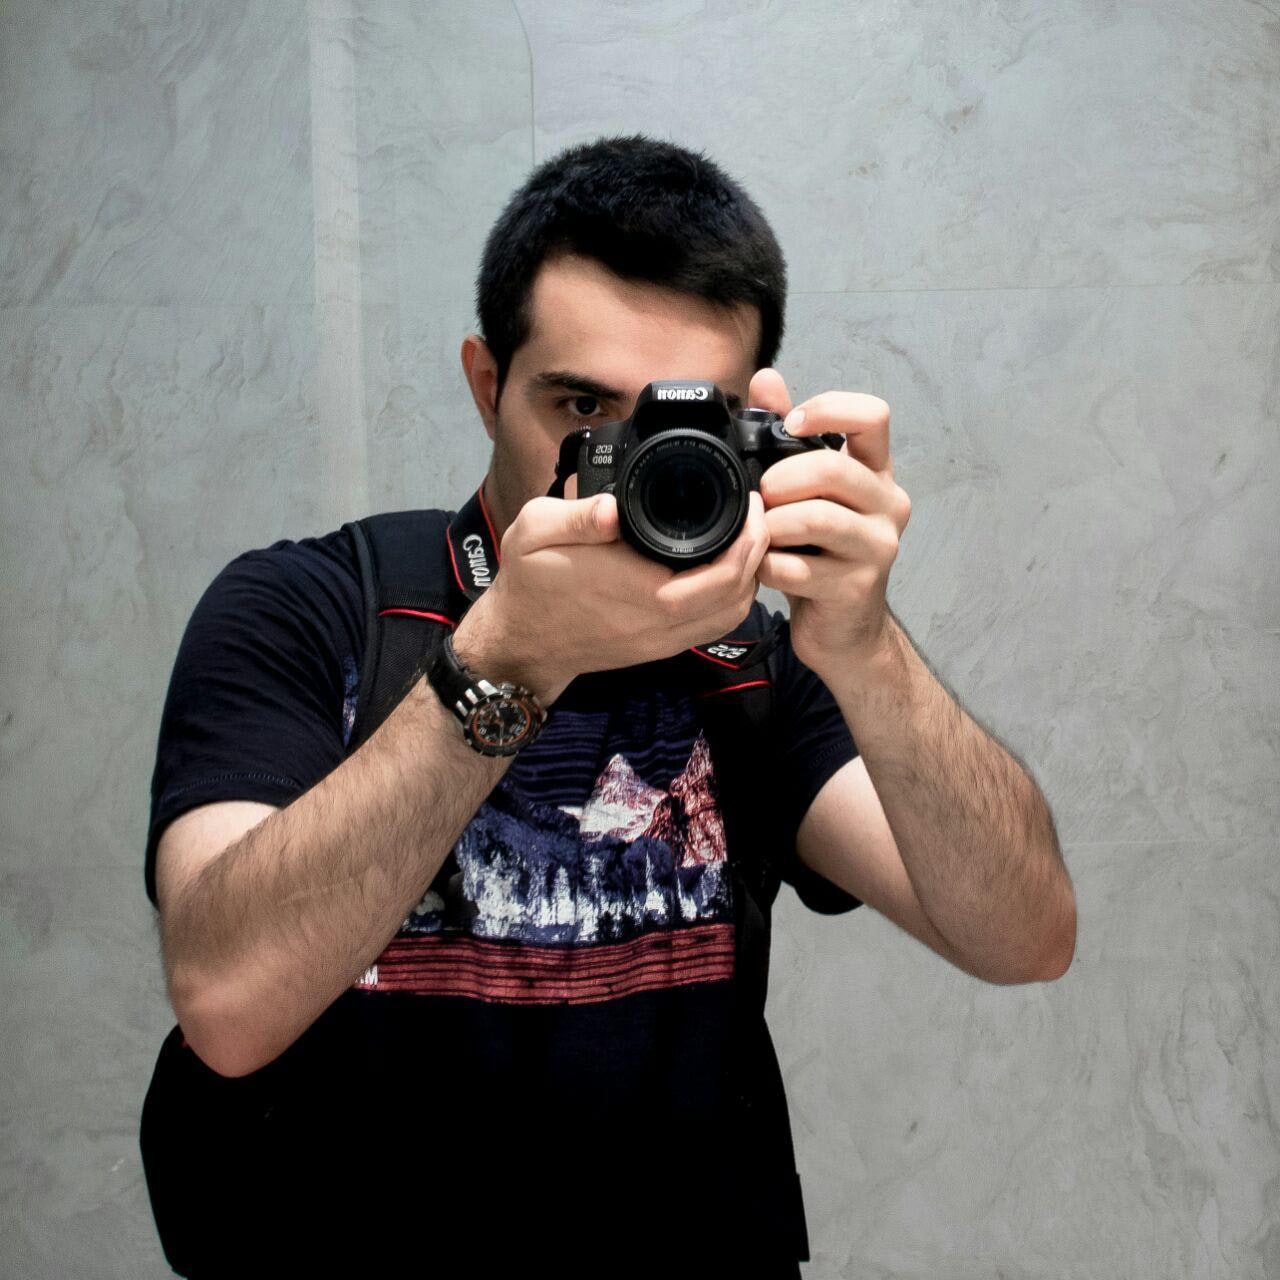 Go to Behnam Norouzi's profile